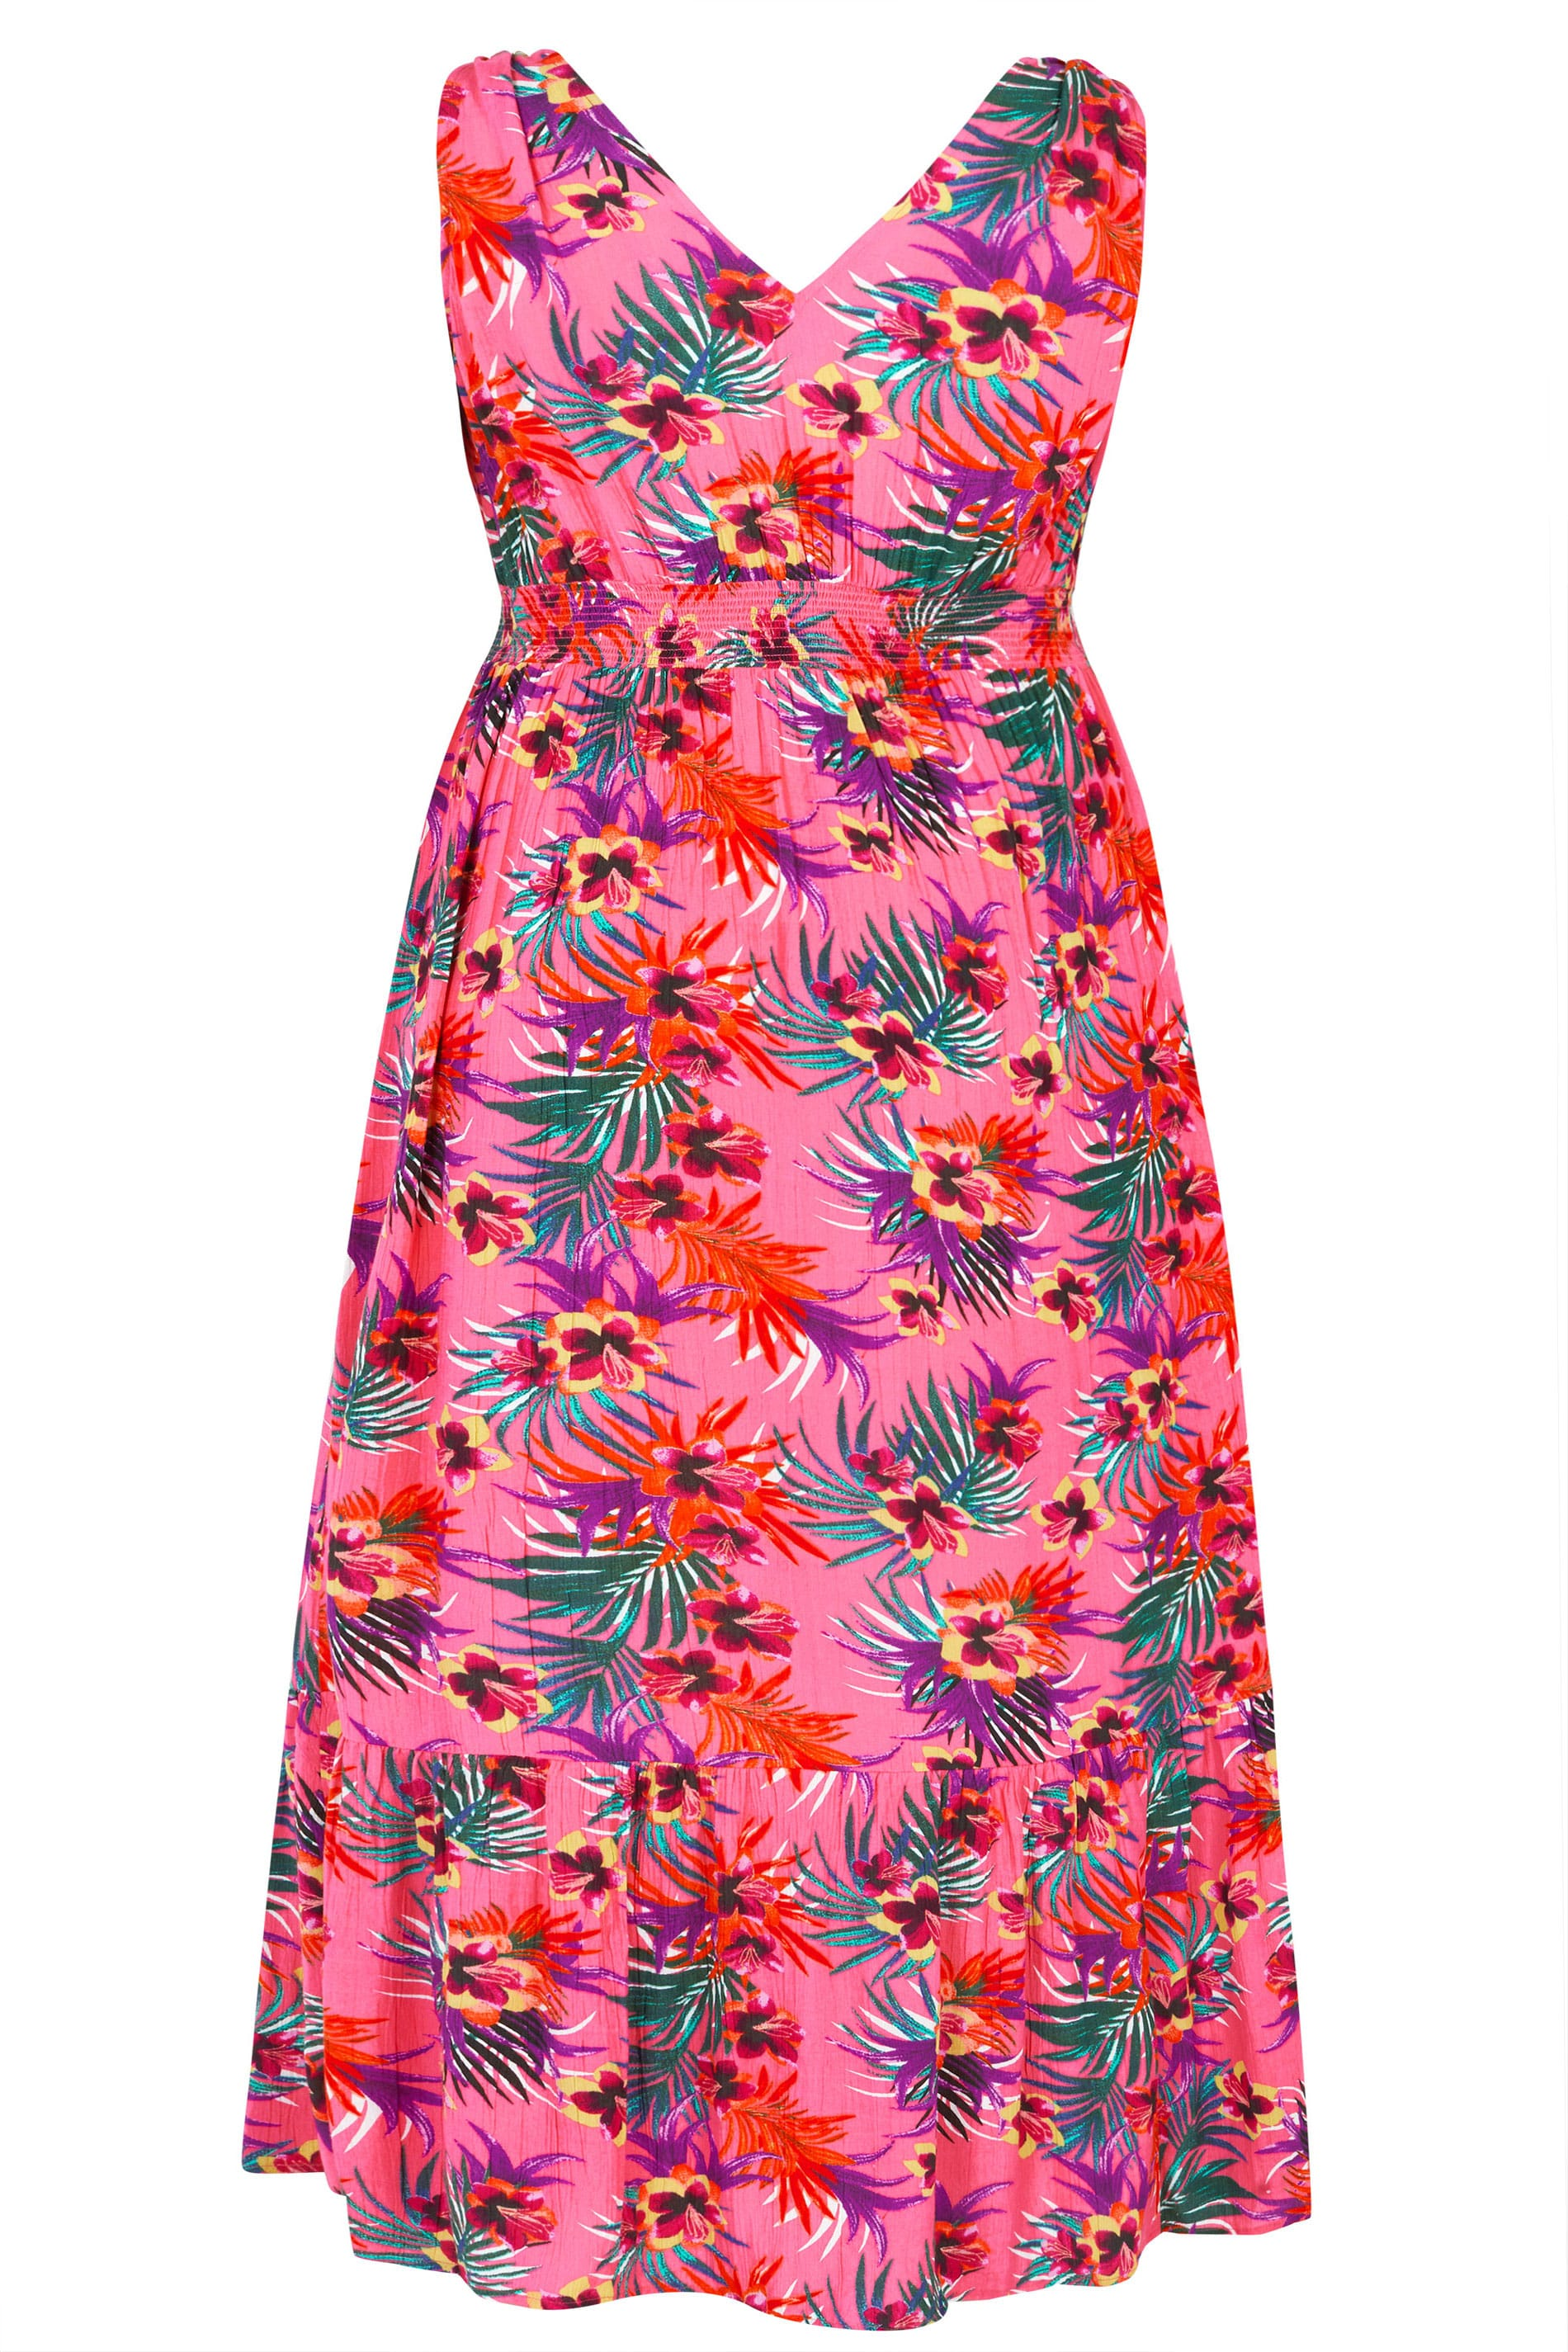 54a760120b27 Pink Tropical Maxi Dress | Plus Sizes 16 to 36 | Yours Clothing